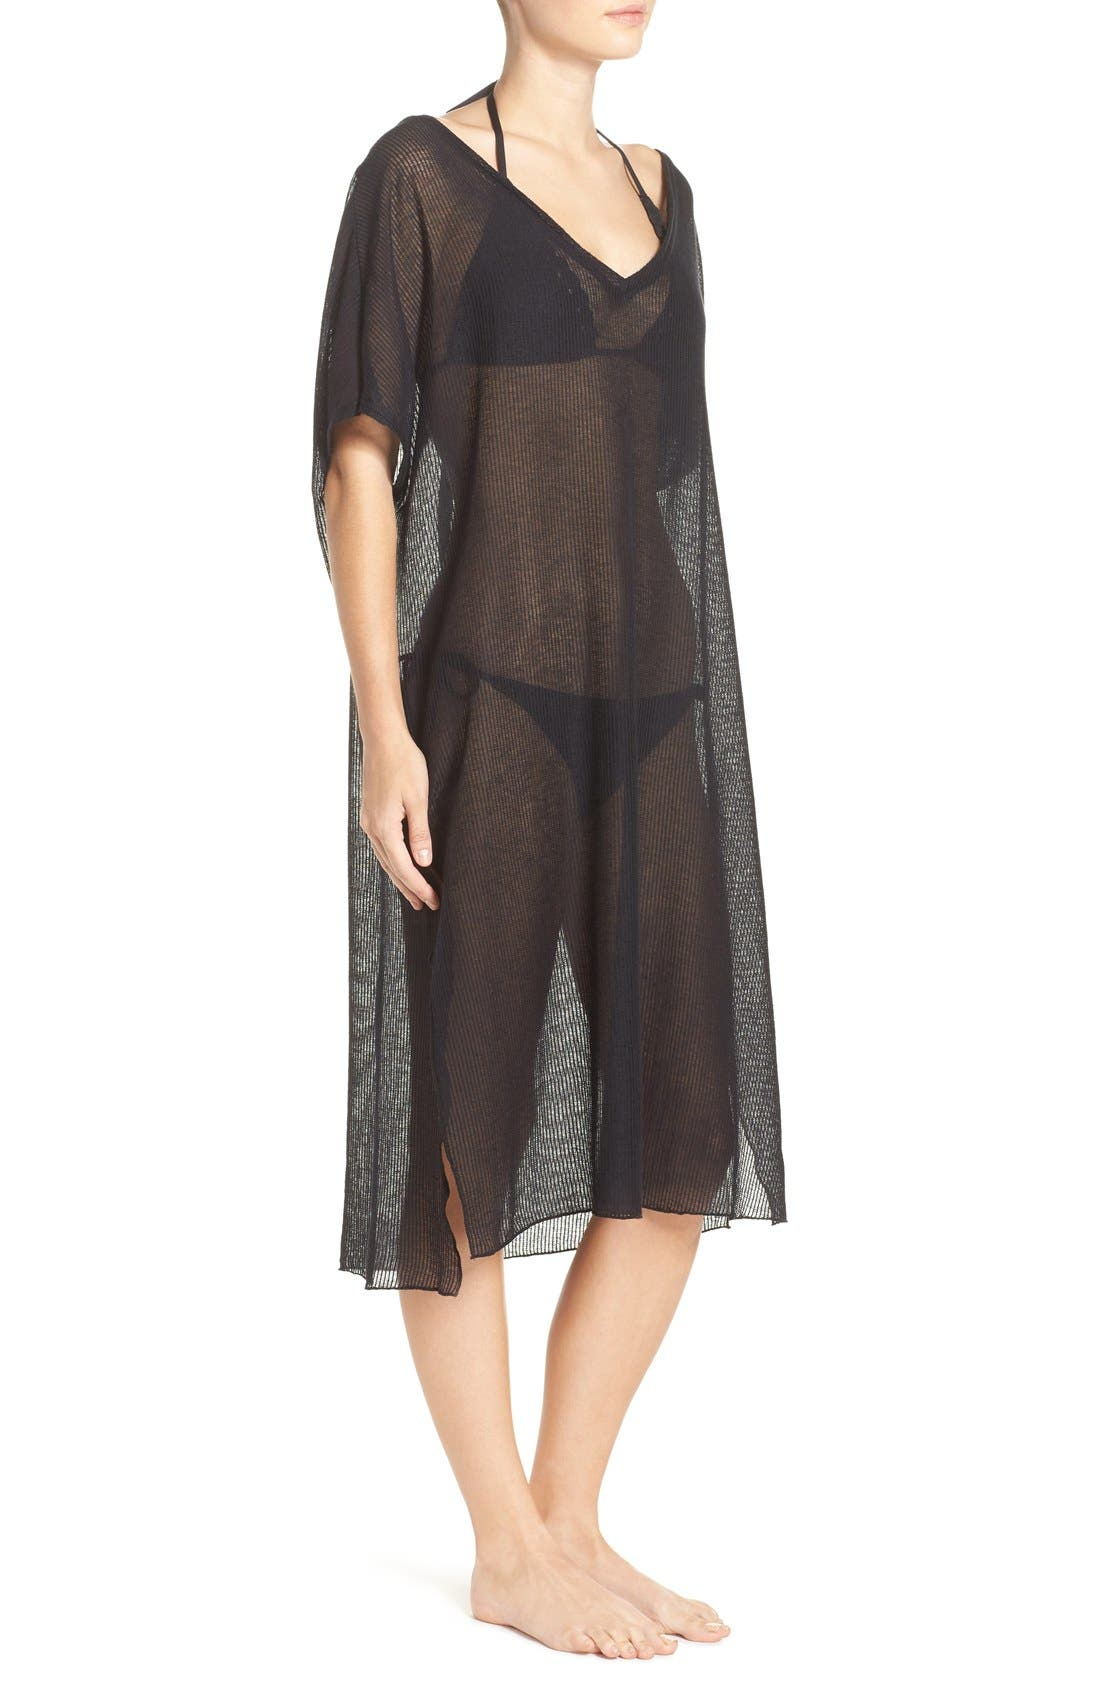 BECCA,                             By the Sea Cover-Up Tunic,                             Alternate thumbnail 8, color,                             001